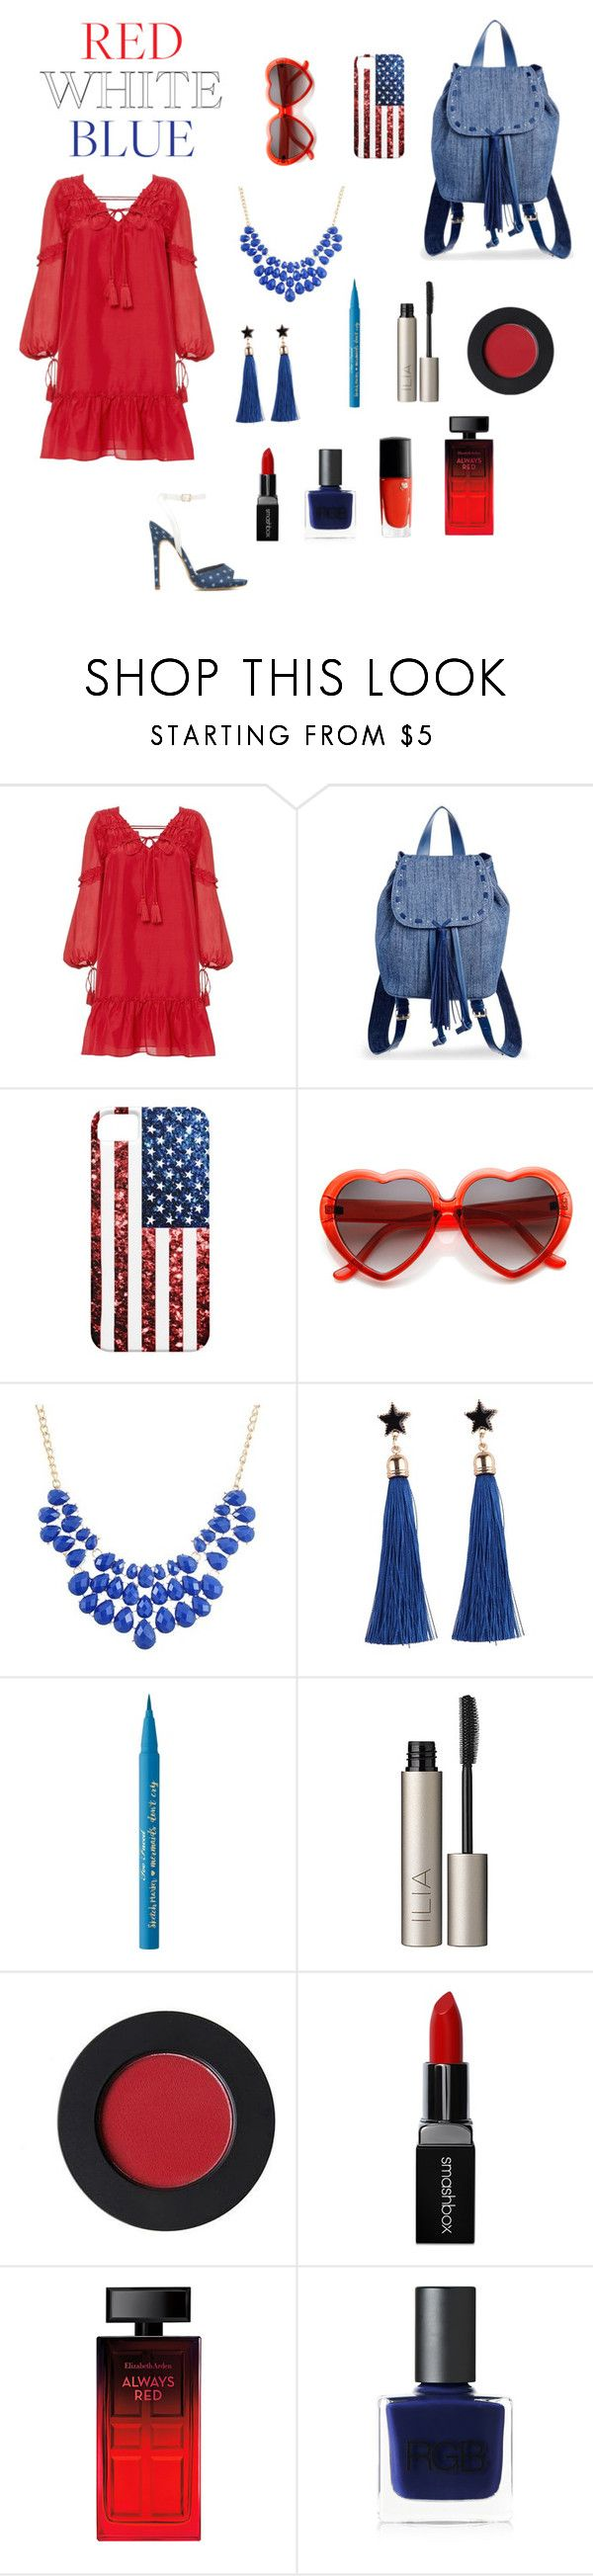 """""""It's a party in the USA"""" by danae-zzz ❤ liked on Polyvore featuring 10 Crosby Derek Lam, Steve Madden, Too Faced Cosmetics, Ilia, Smashbox, Elizabeth Arden, RGB Cosmetics and Lancôme"""